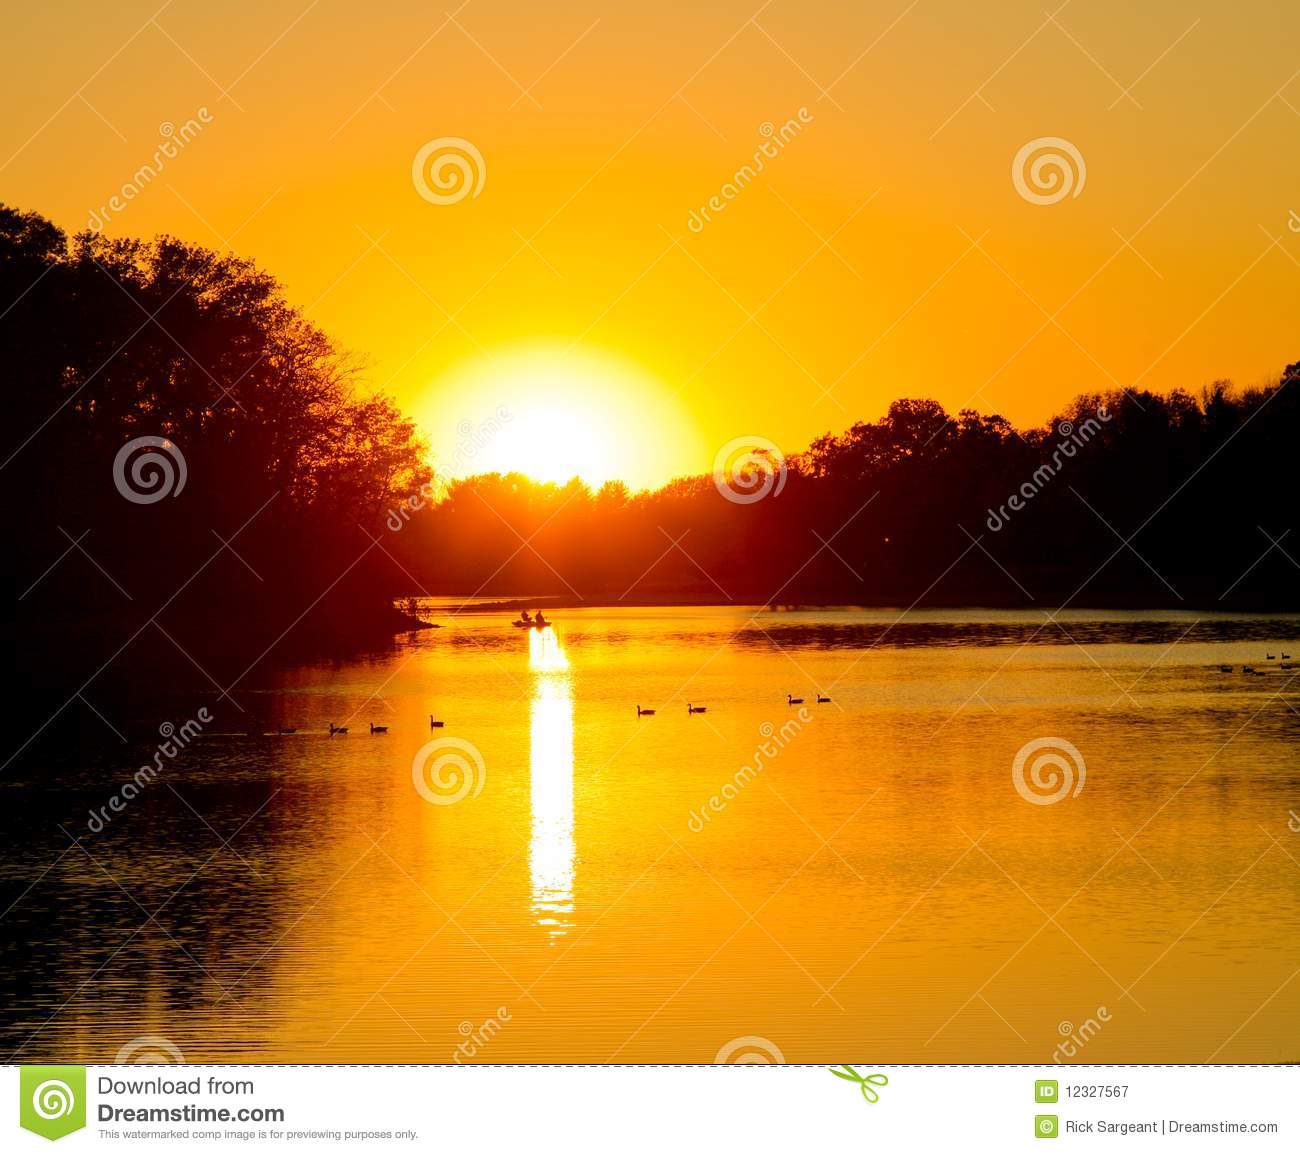 Rising Sun Royalty Free Stock Photography - Image: 12327567